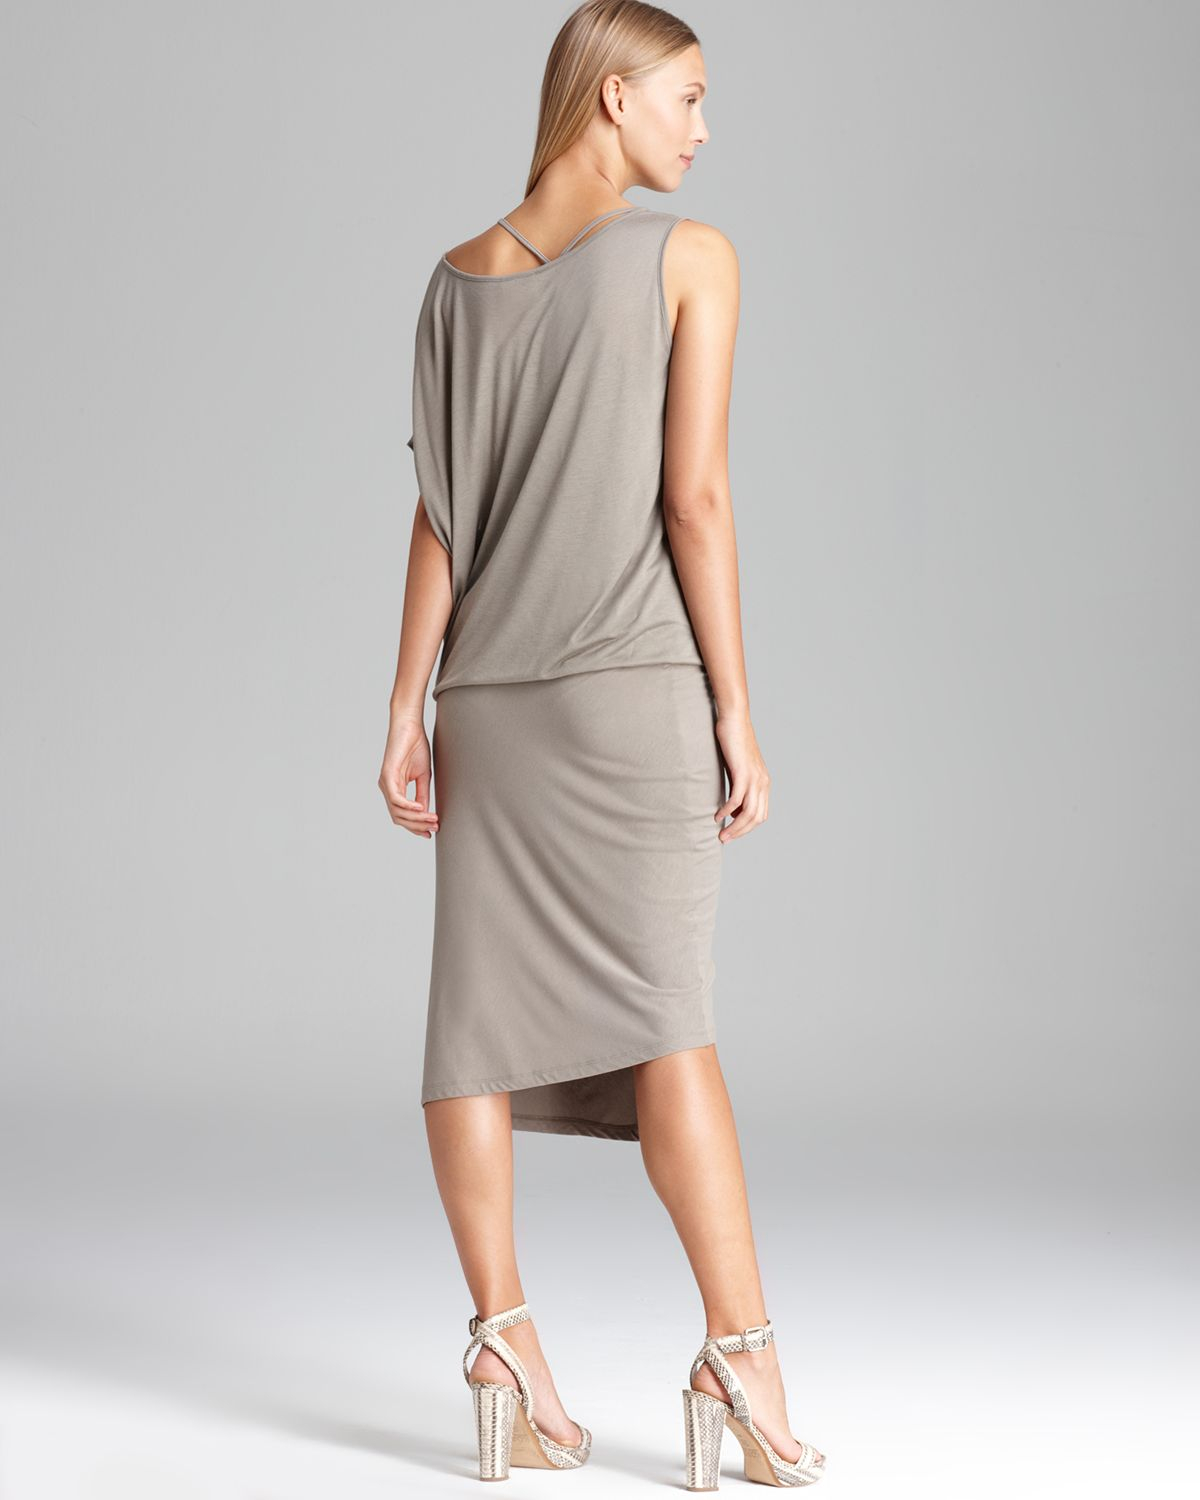 Dkny Double Layer Short Sleeve Scoop Neck Dress In Natural